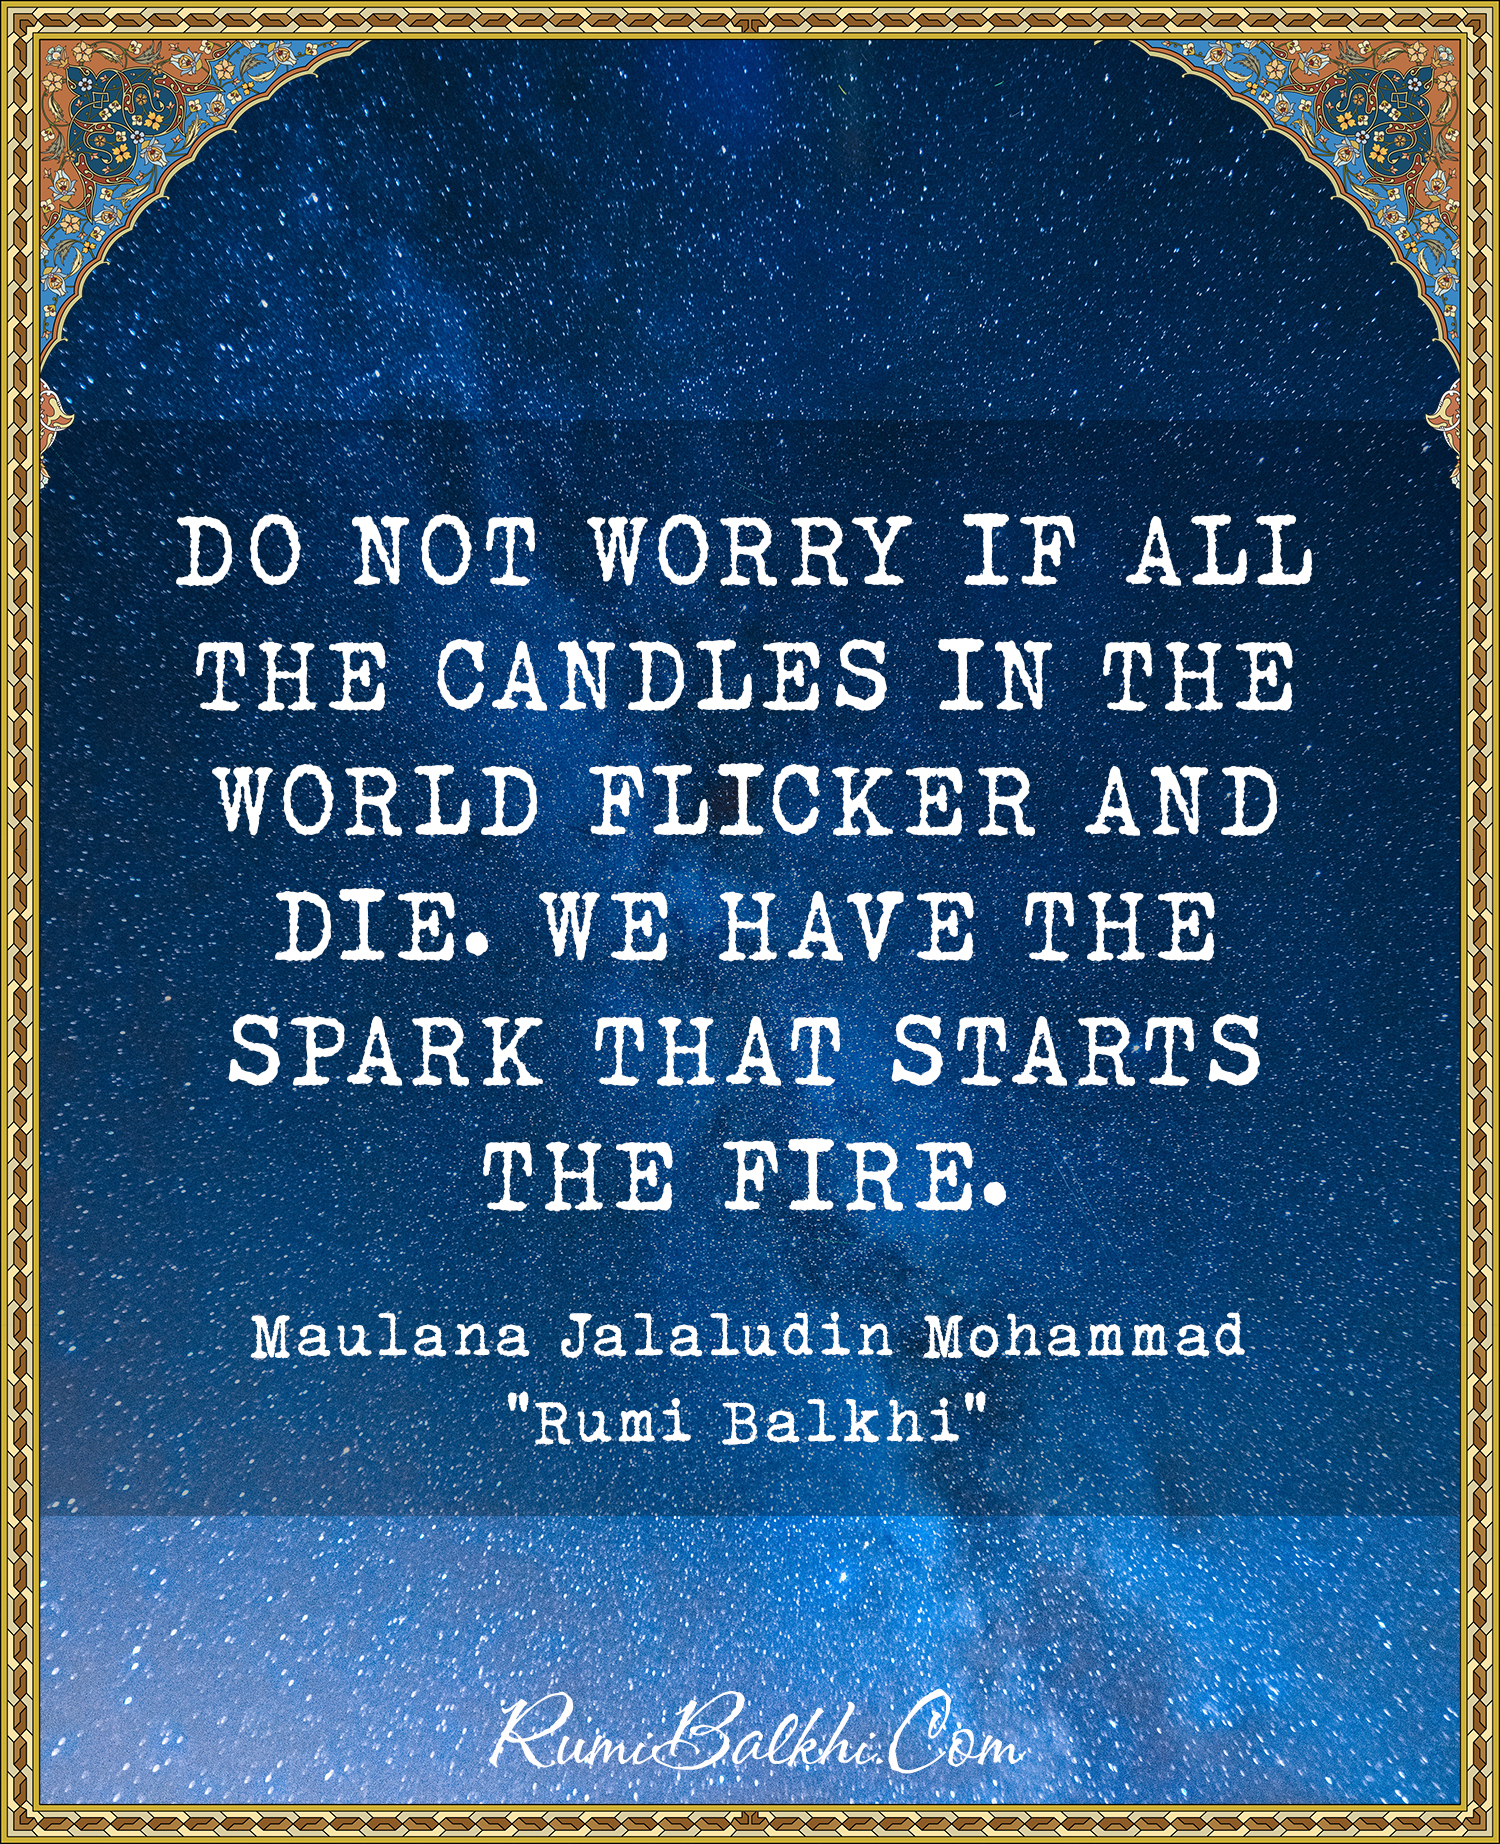 Do Not Worry If All The Candles In The World Flicker And Die